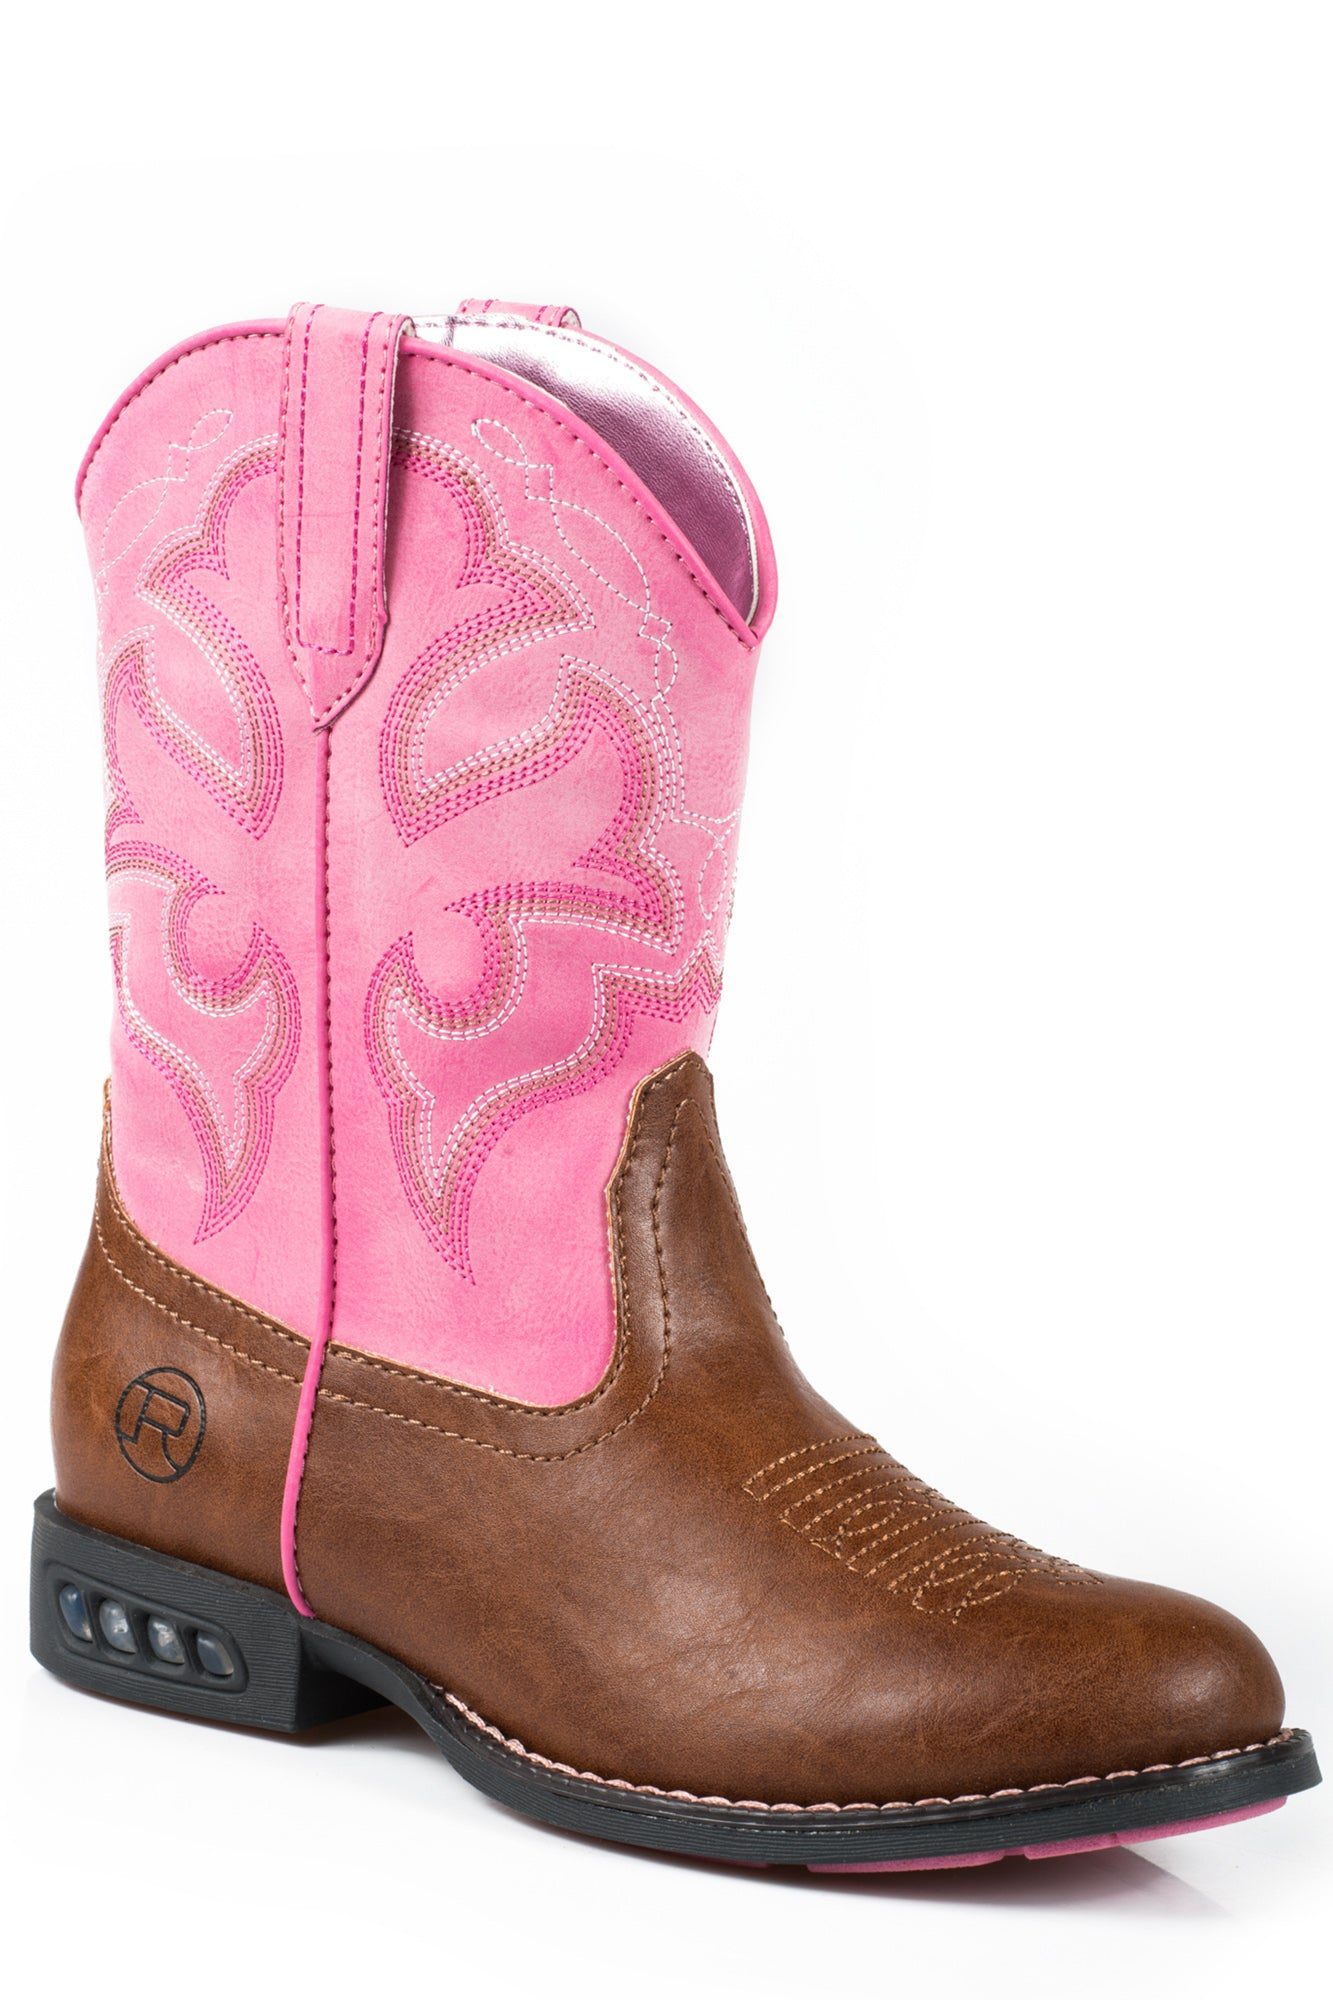 00cd934bd6e Roper Lightning Kids Tan Faux Leather Girls Light Up Western Boots